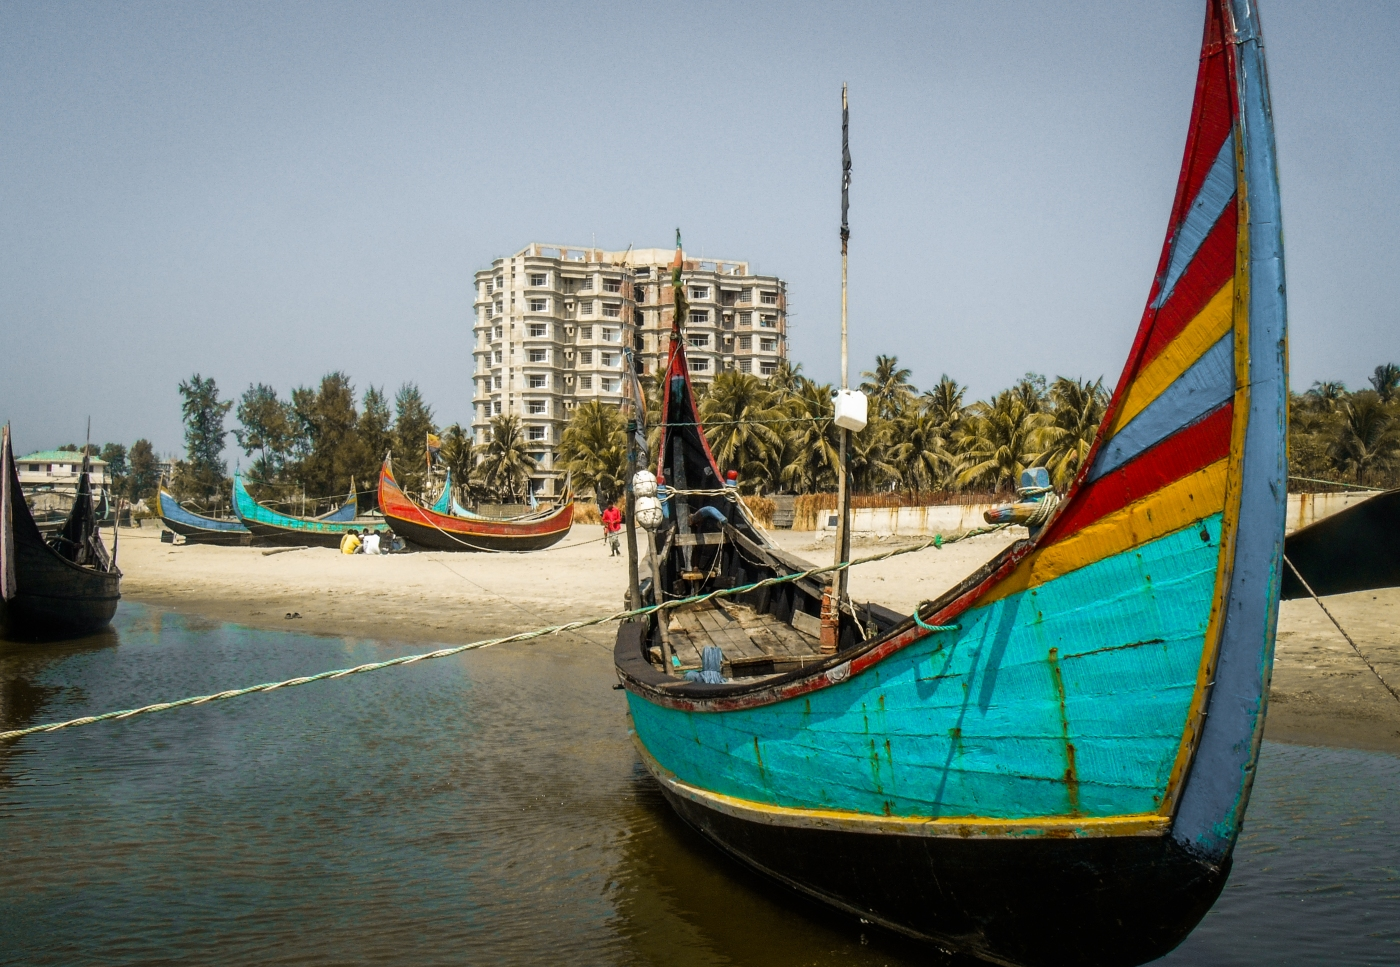 Southeast Bangladesh: Cox's Bazar and Inani Beach